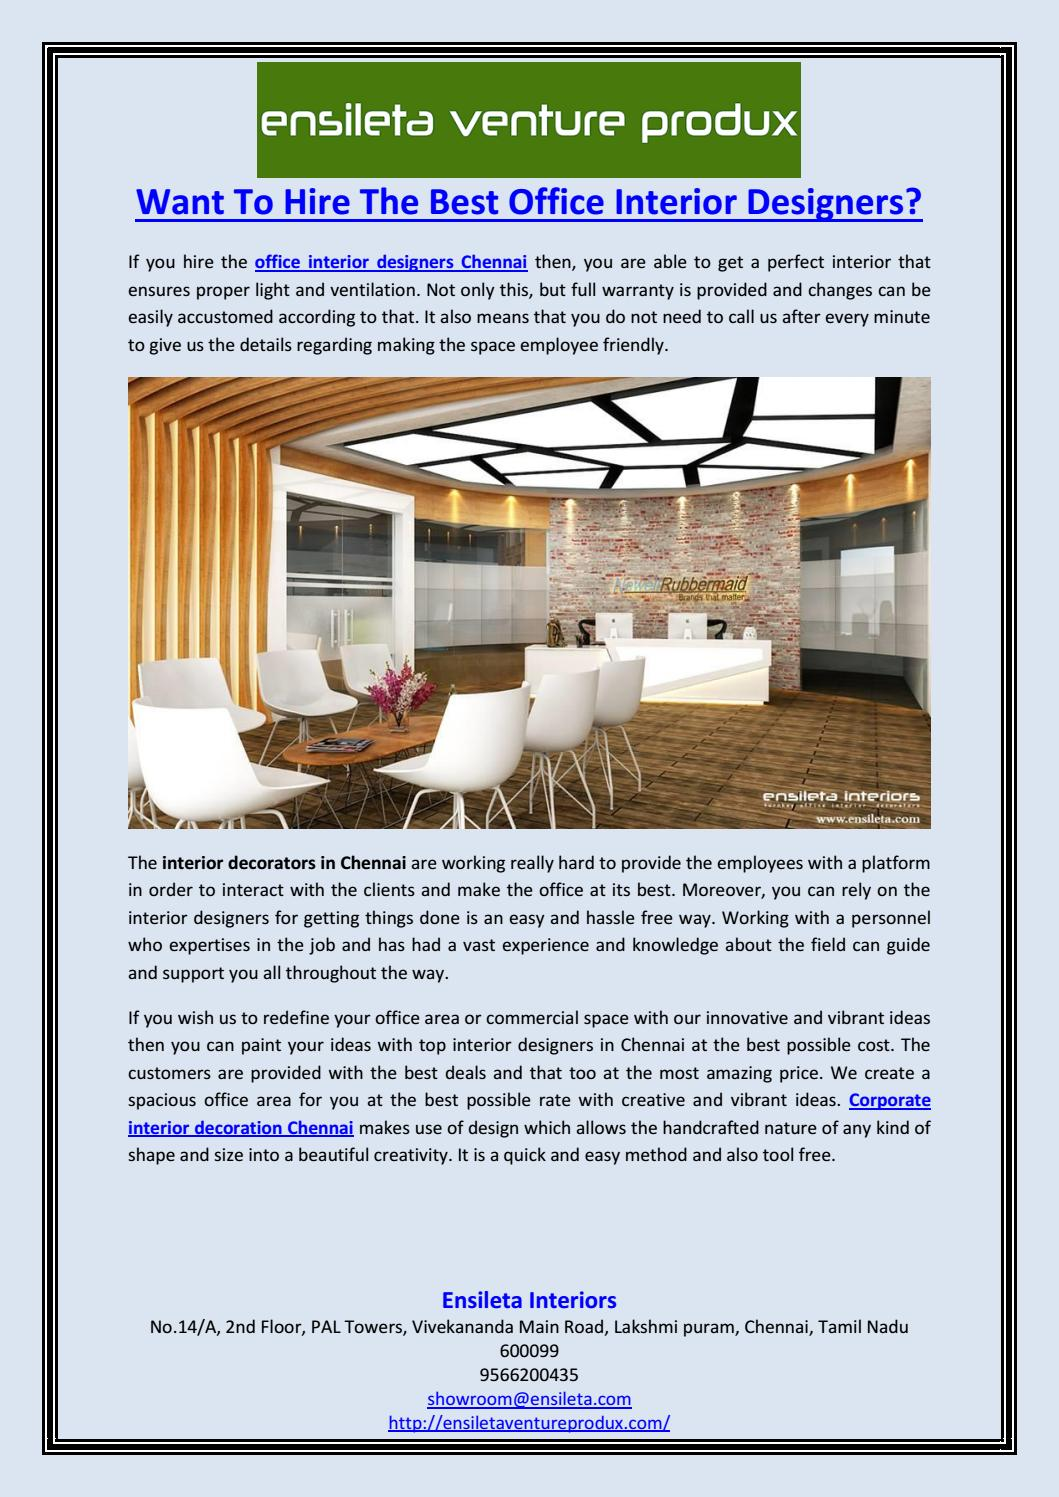 Want To Hire The Best Office Interior Designers By Ensileta Interiors Issuu